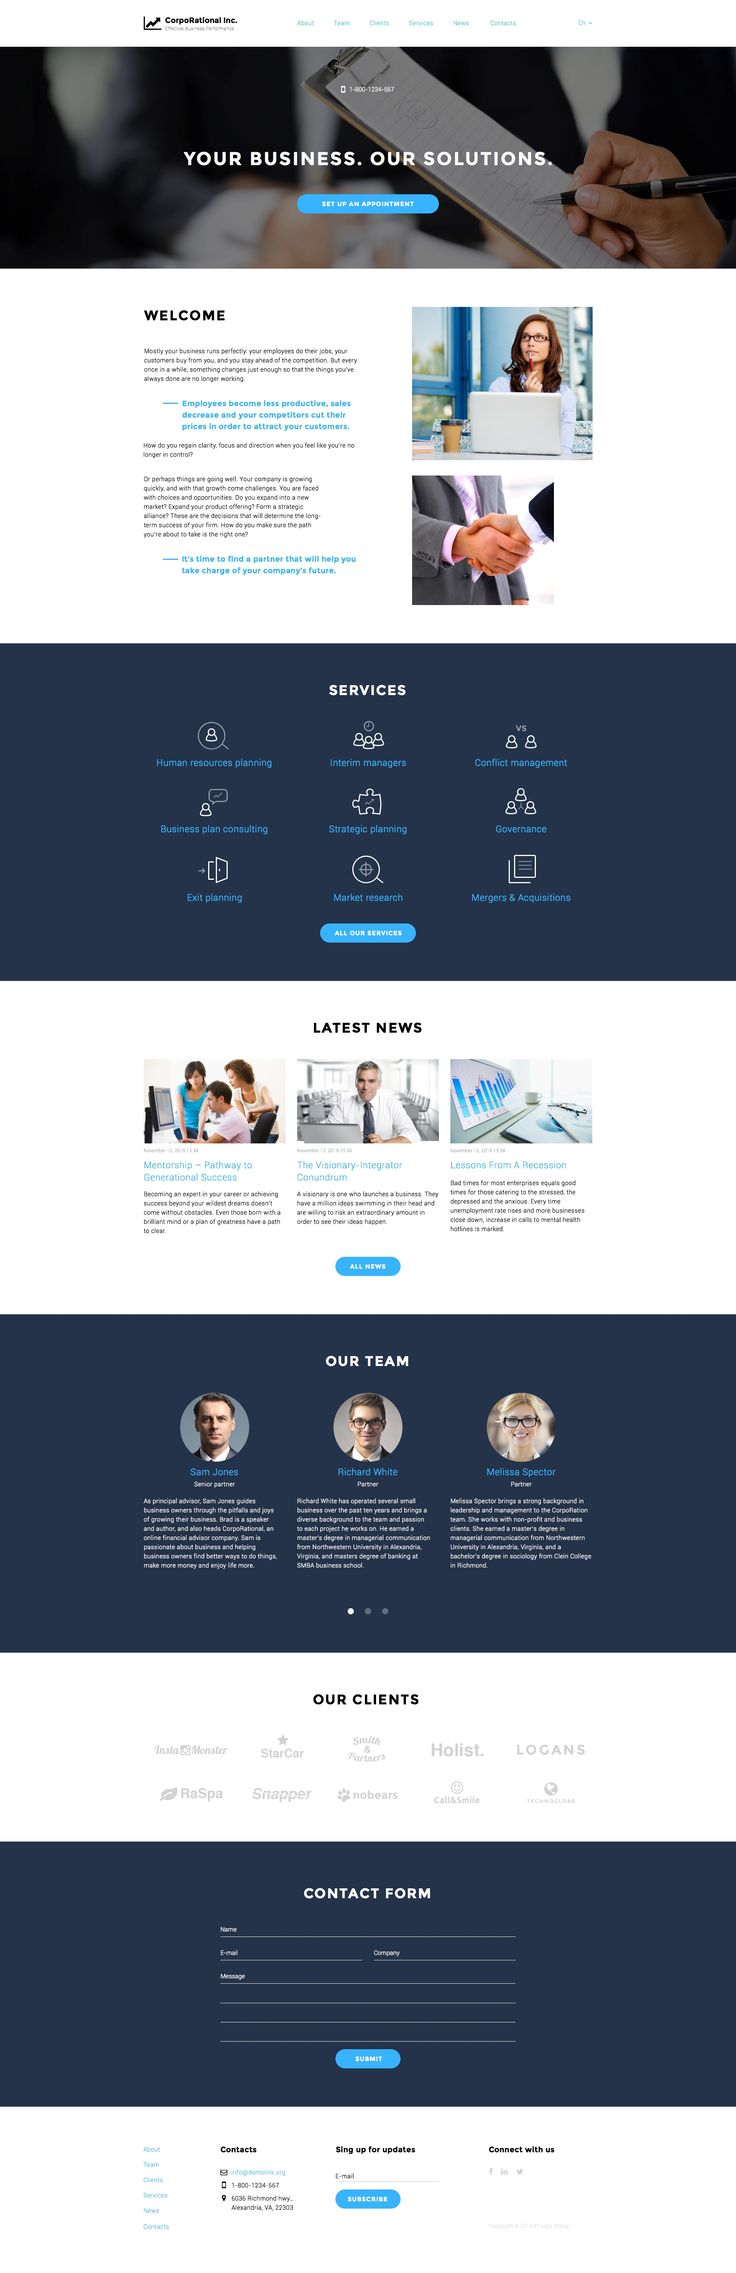 Coming soon: Business Responsive Template. Check Out its release:  http://www.templatemonster.com/?utm_source=pinterest&utm_medium=timeline&utm_campaign=comsoon